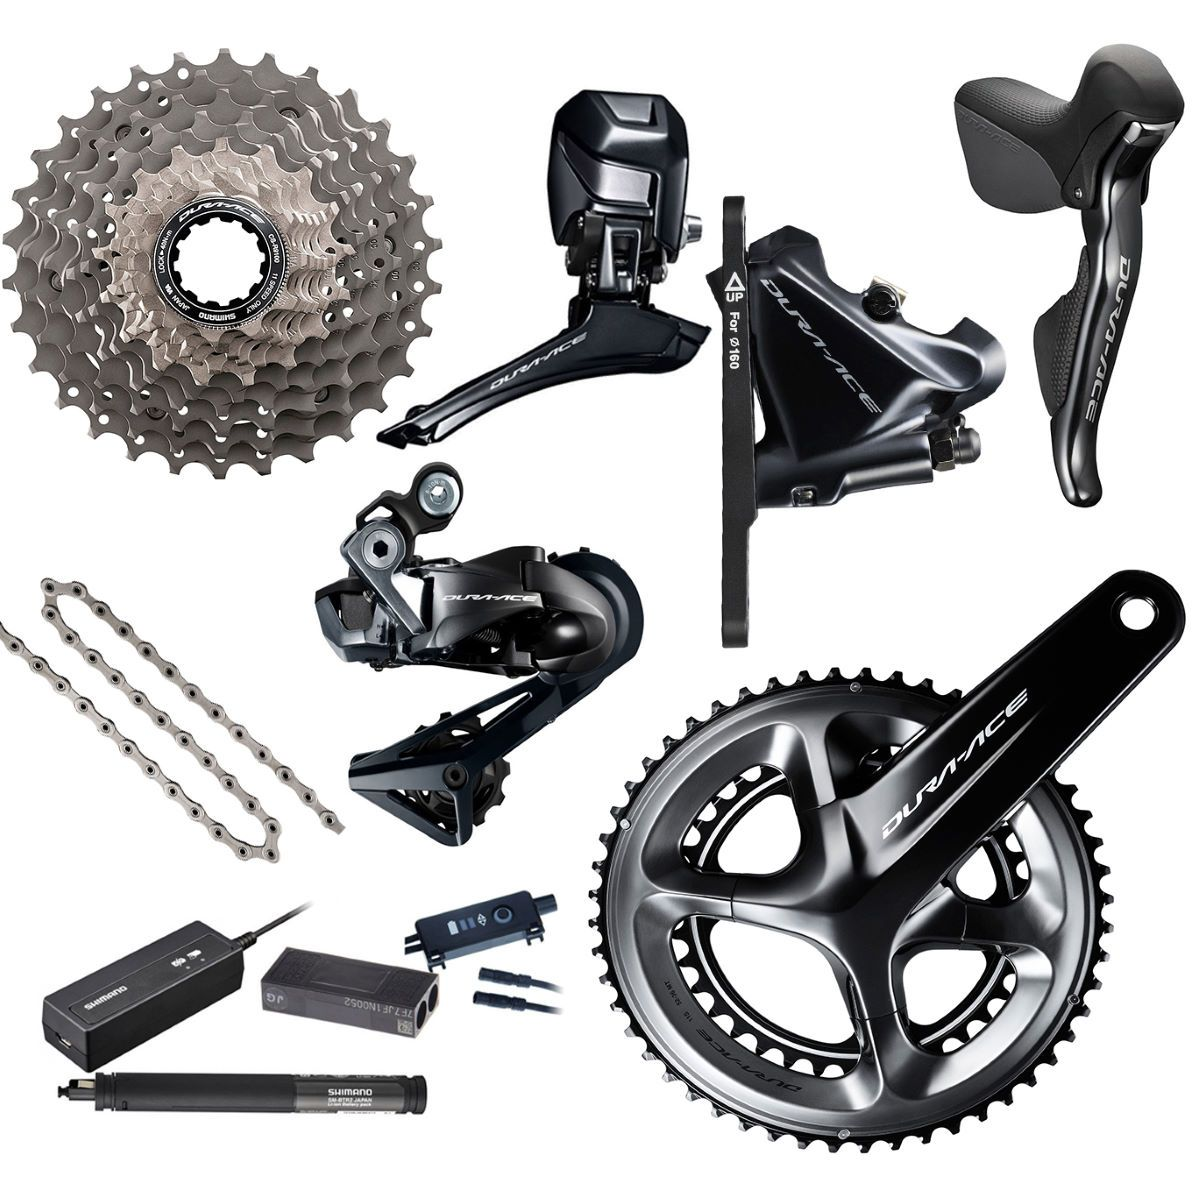 Shimano Dura Ace R9170 Di2 Groupset Groupsets Build Kits